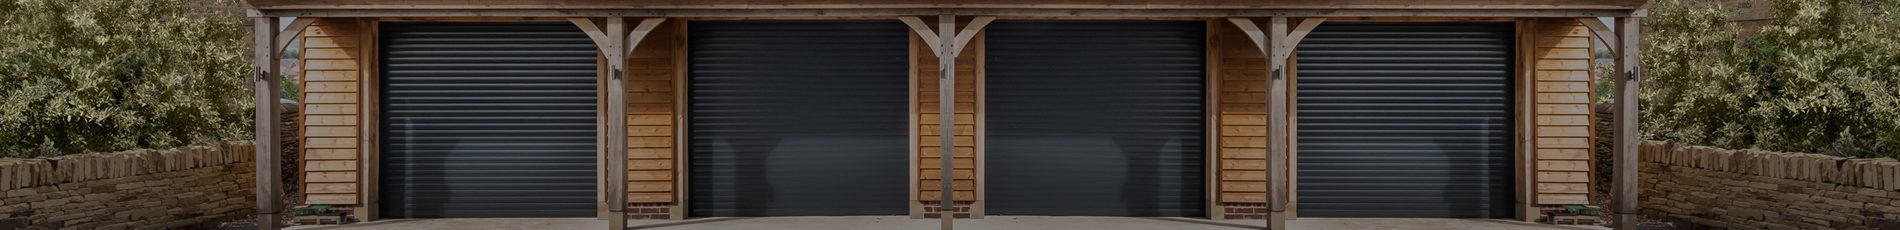 Roller Garage Doors Dundee - Franchise, Installer and Stockists Opportunity